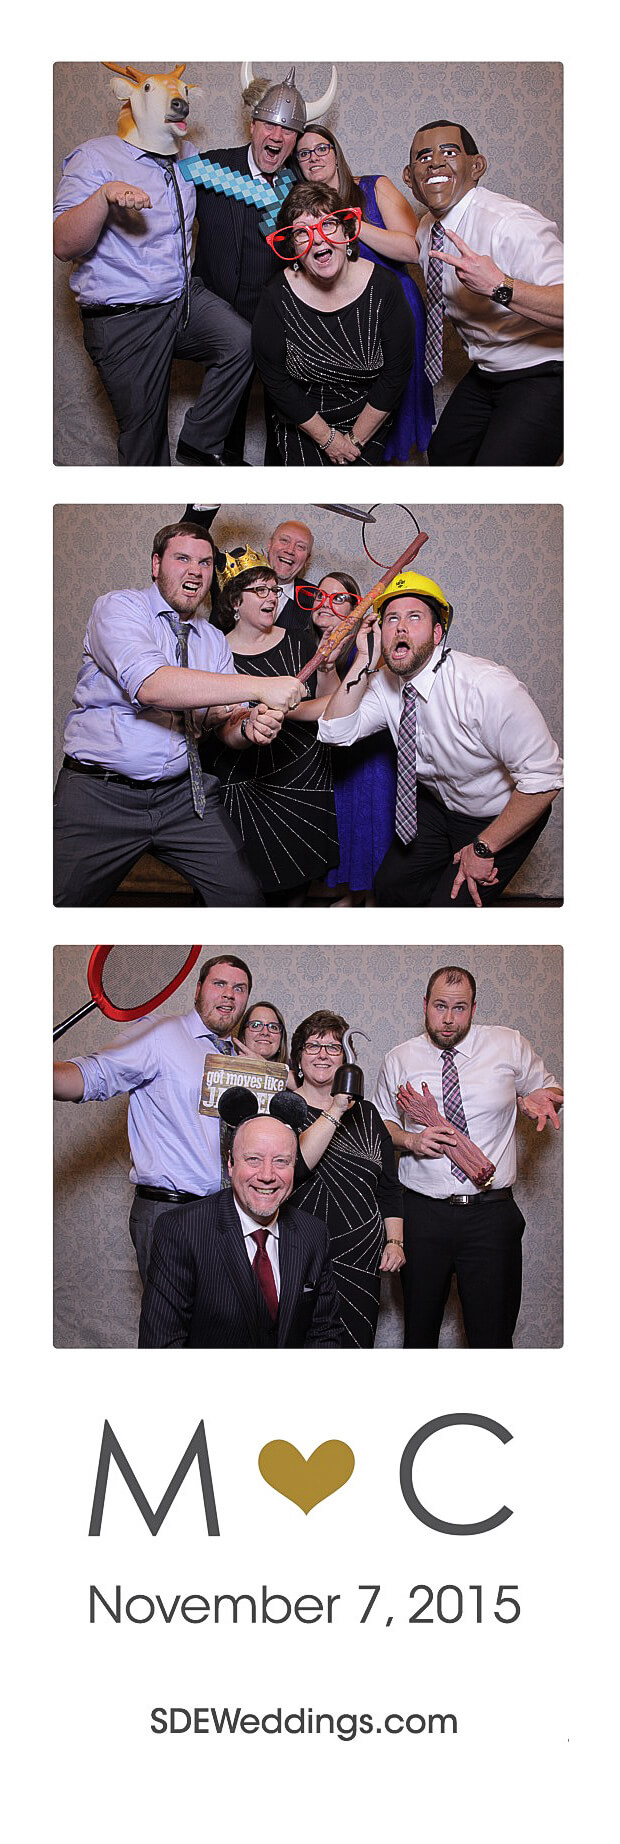 The Club at Bond Head Wedding Photo Booth Rental 11